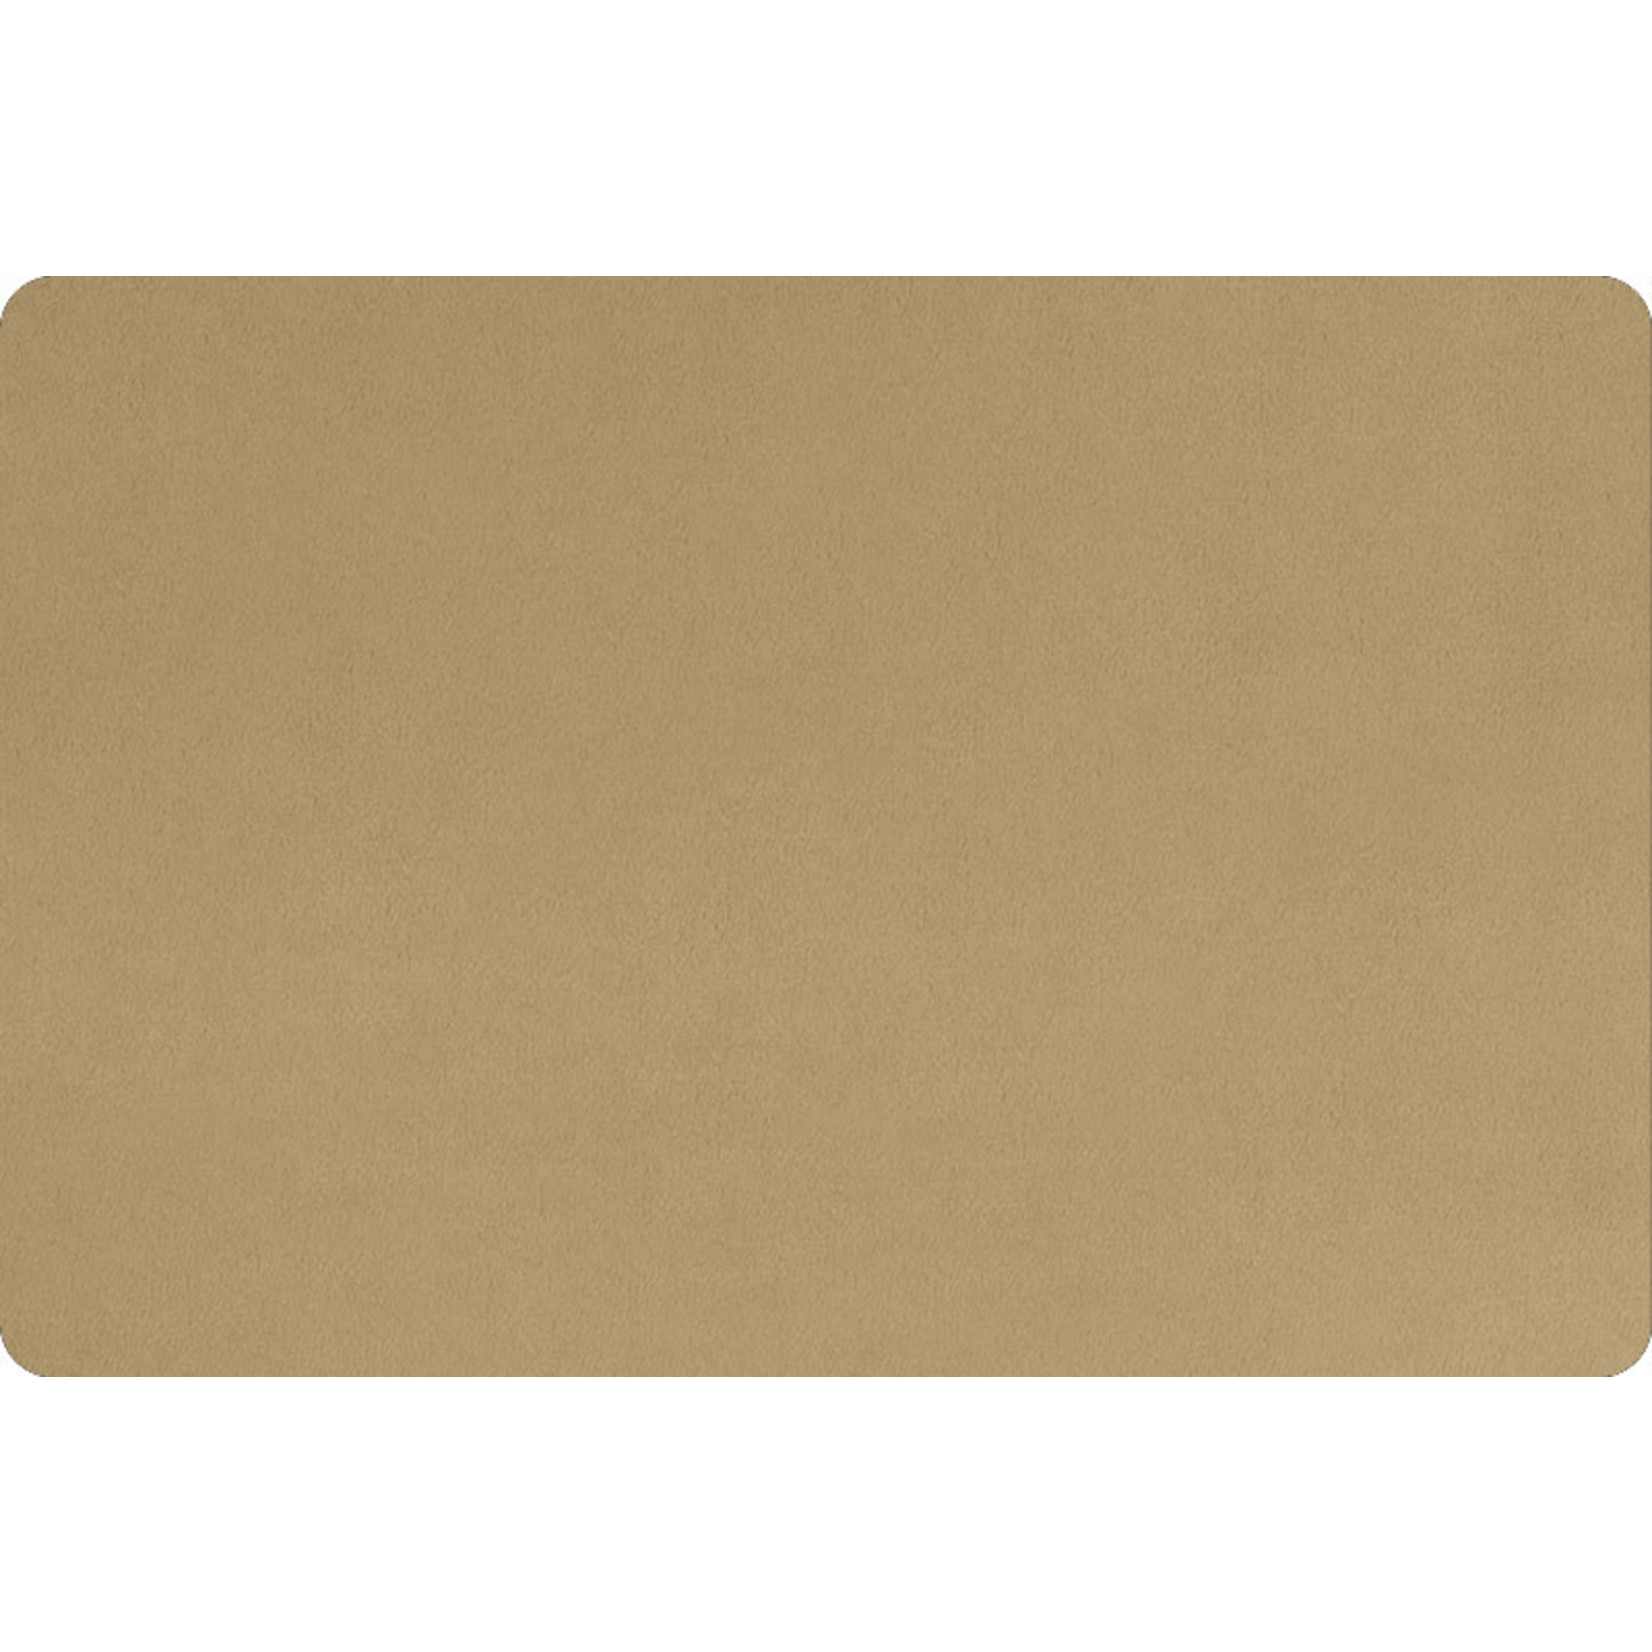 """Shannon Fabrics Minky, Extra Wide Solid Cuddle3, 90"""" Sand, (by the inch)"""